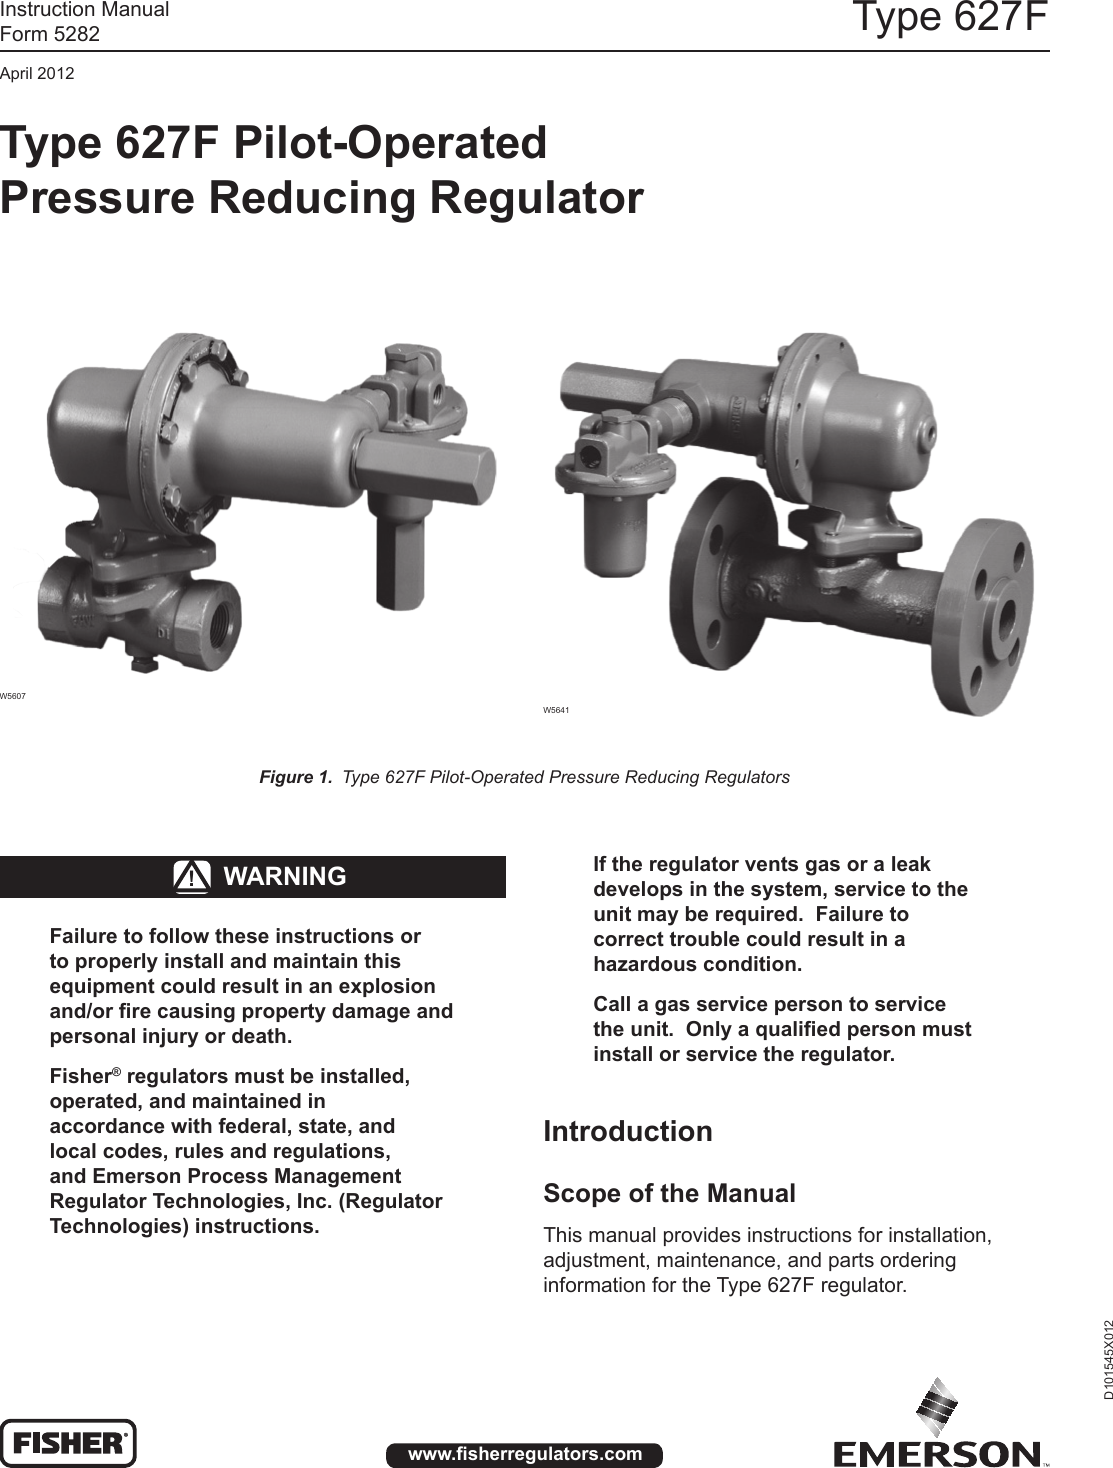 Emerson Type 627F Pressure Reducing Regulator Instruction Manual